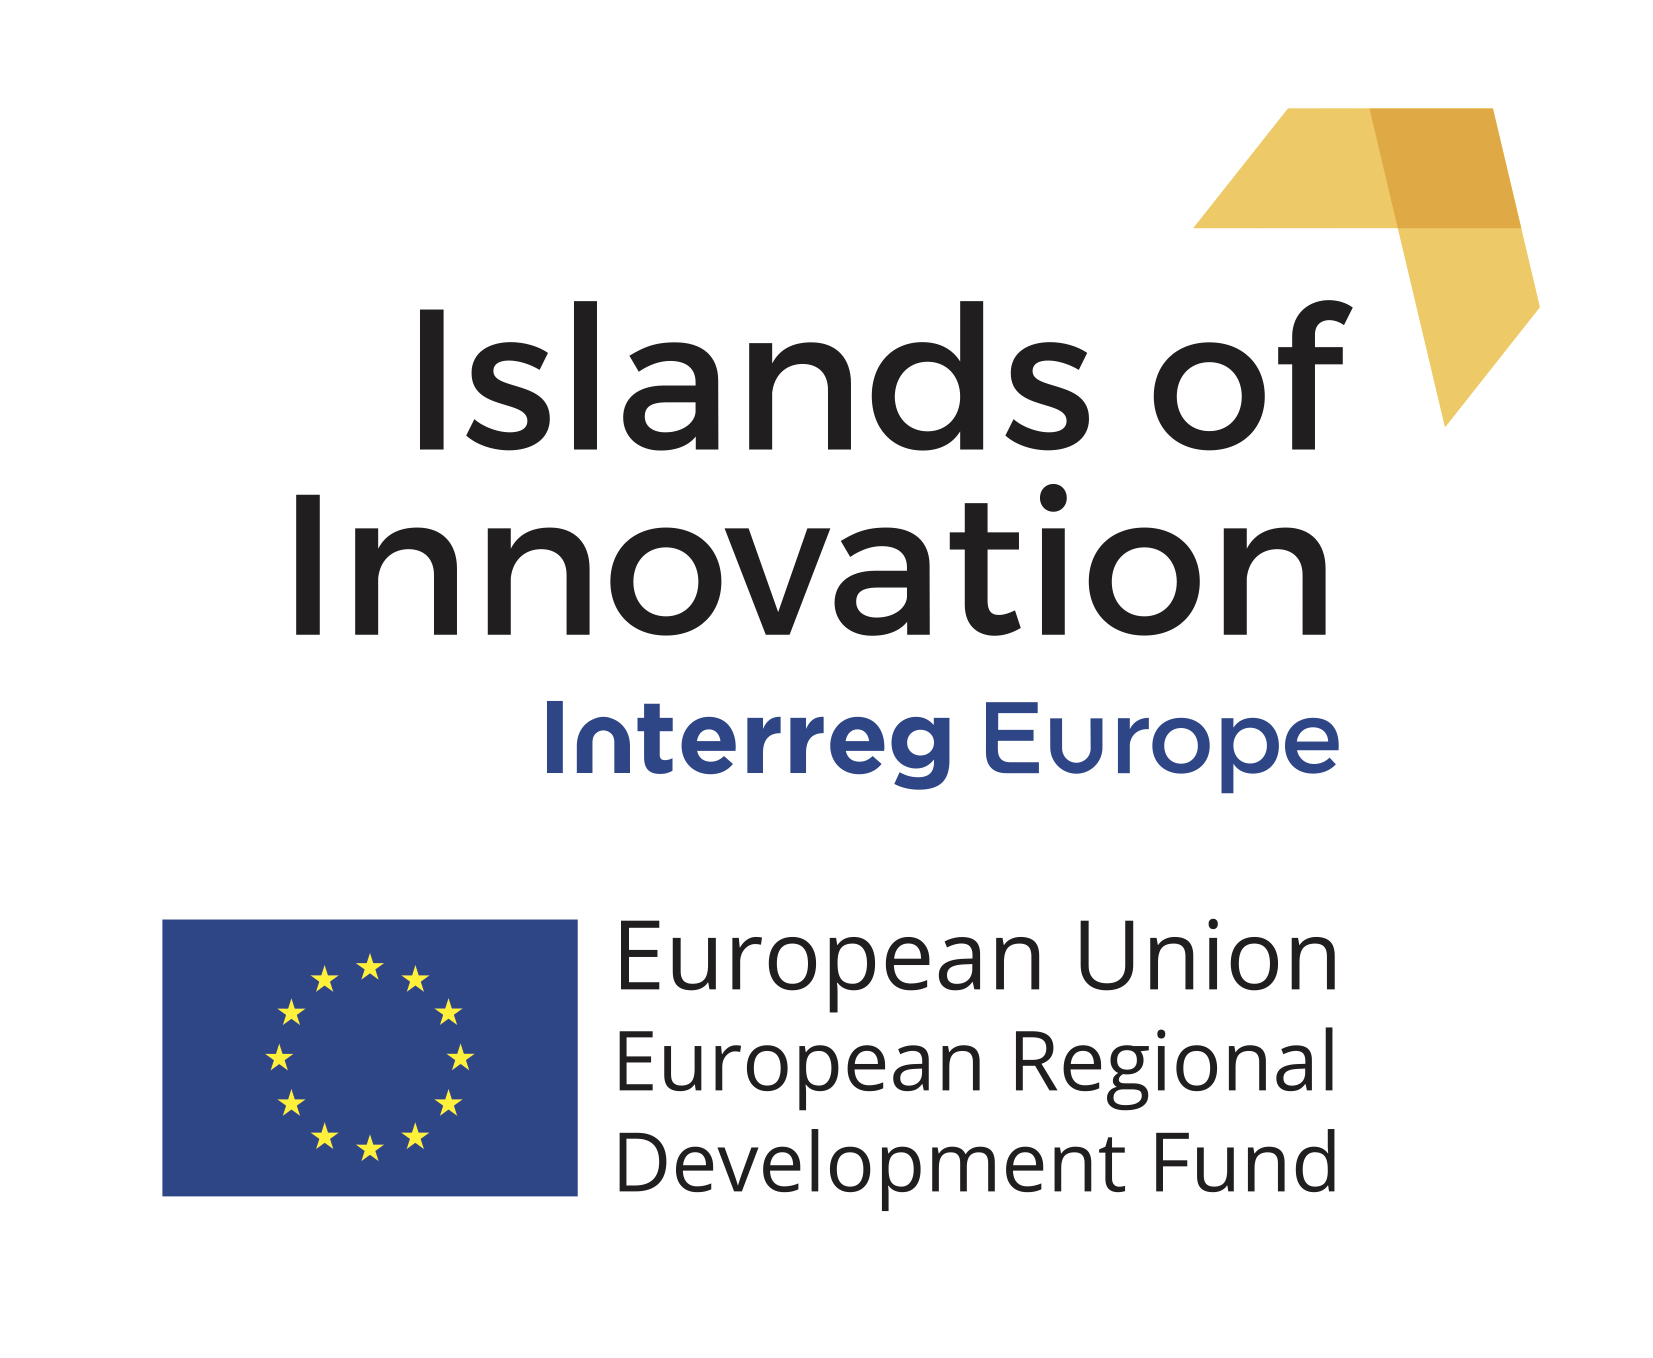 Island of innovation logo